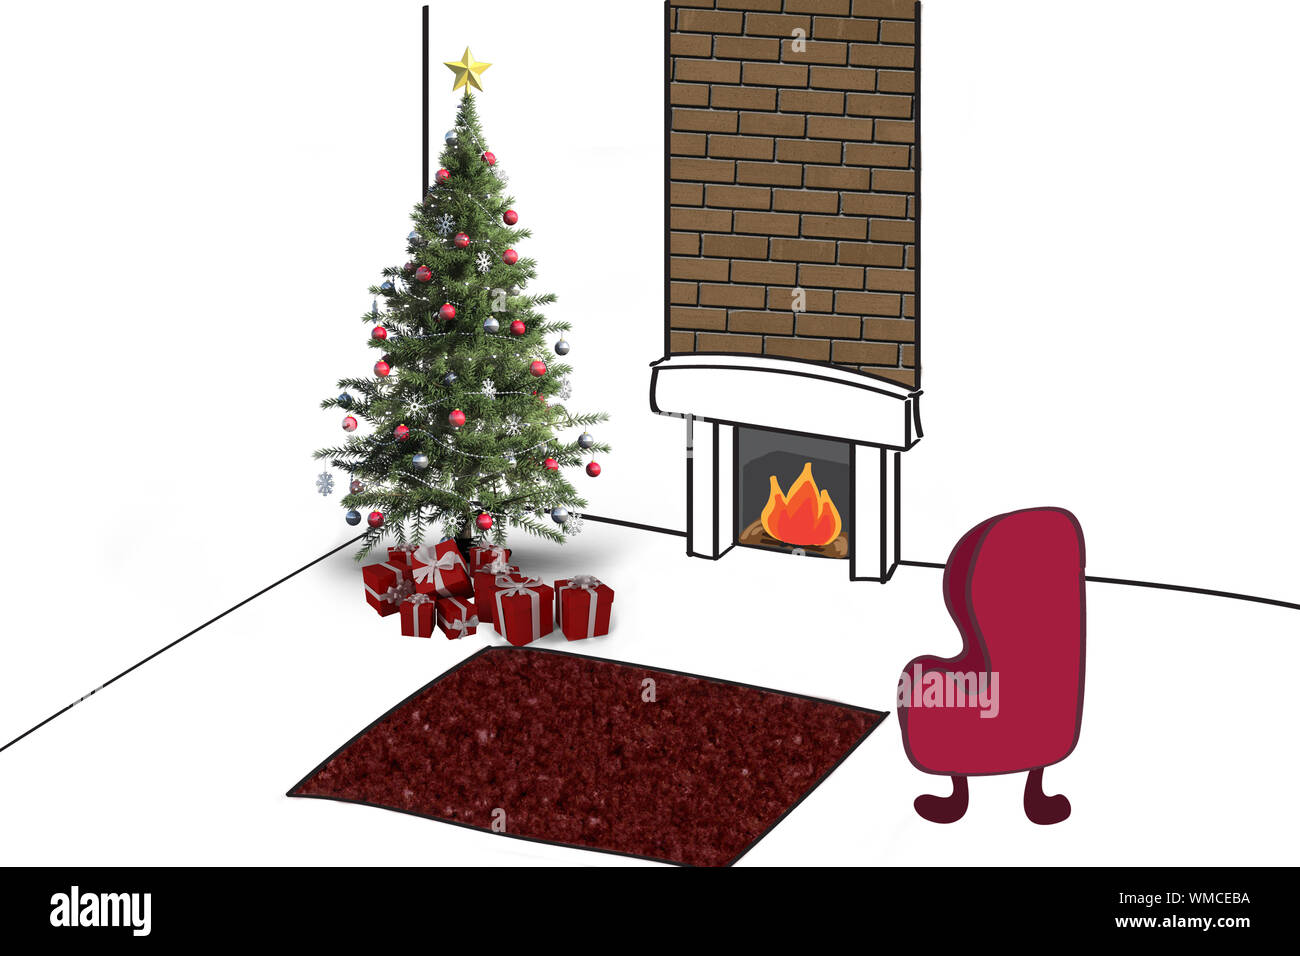 Christmas Tree With Presents Against Living Room Sketch